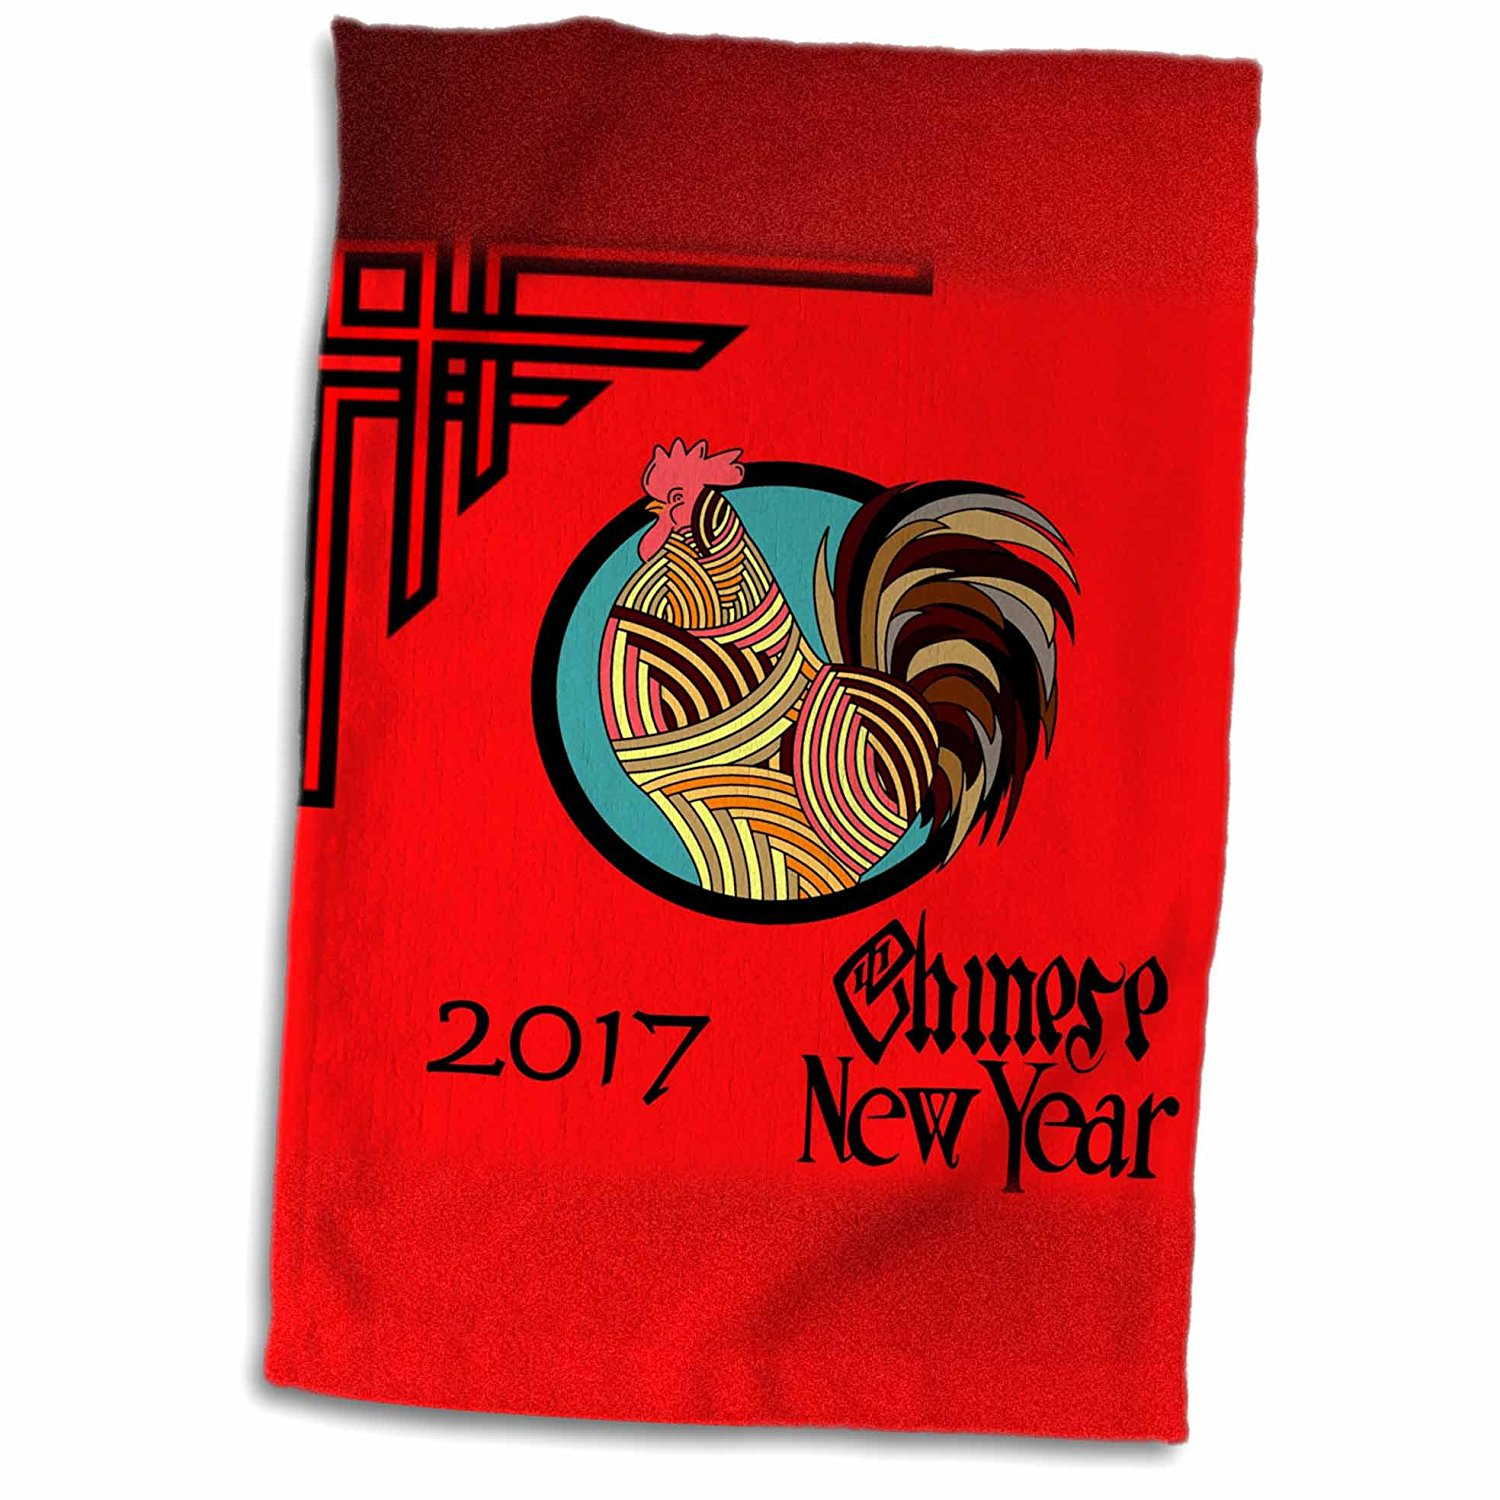 3dRose Florene Chinese New Year Designs - Image of 2017 Chinese New Year - Black and Red With Rooster and Scroll - 12x18 Towel (twl_252060_1)